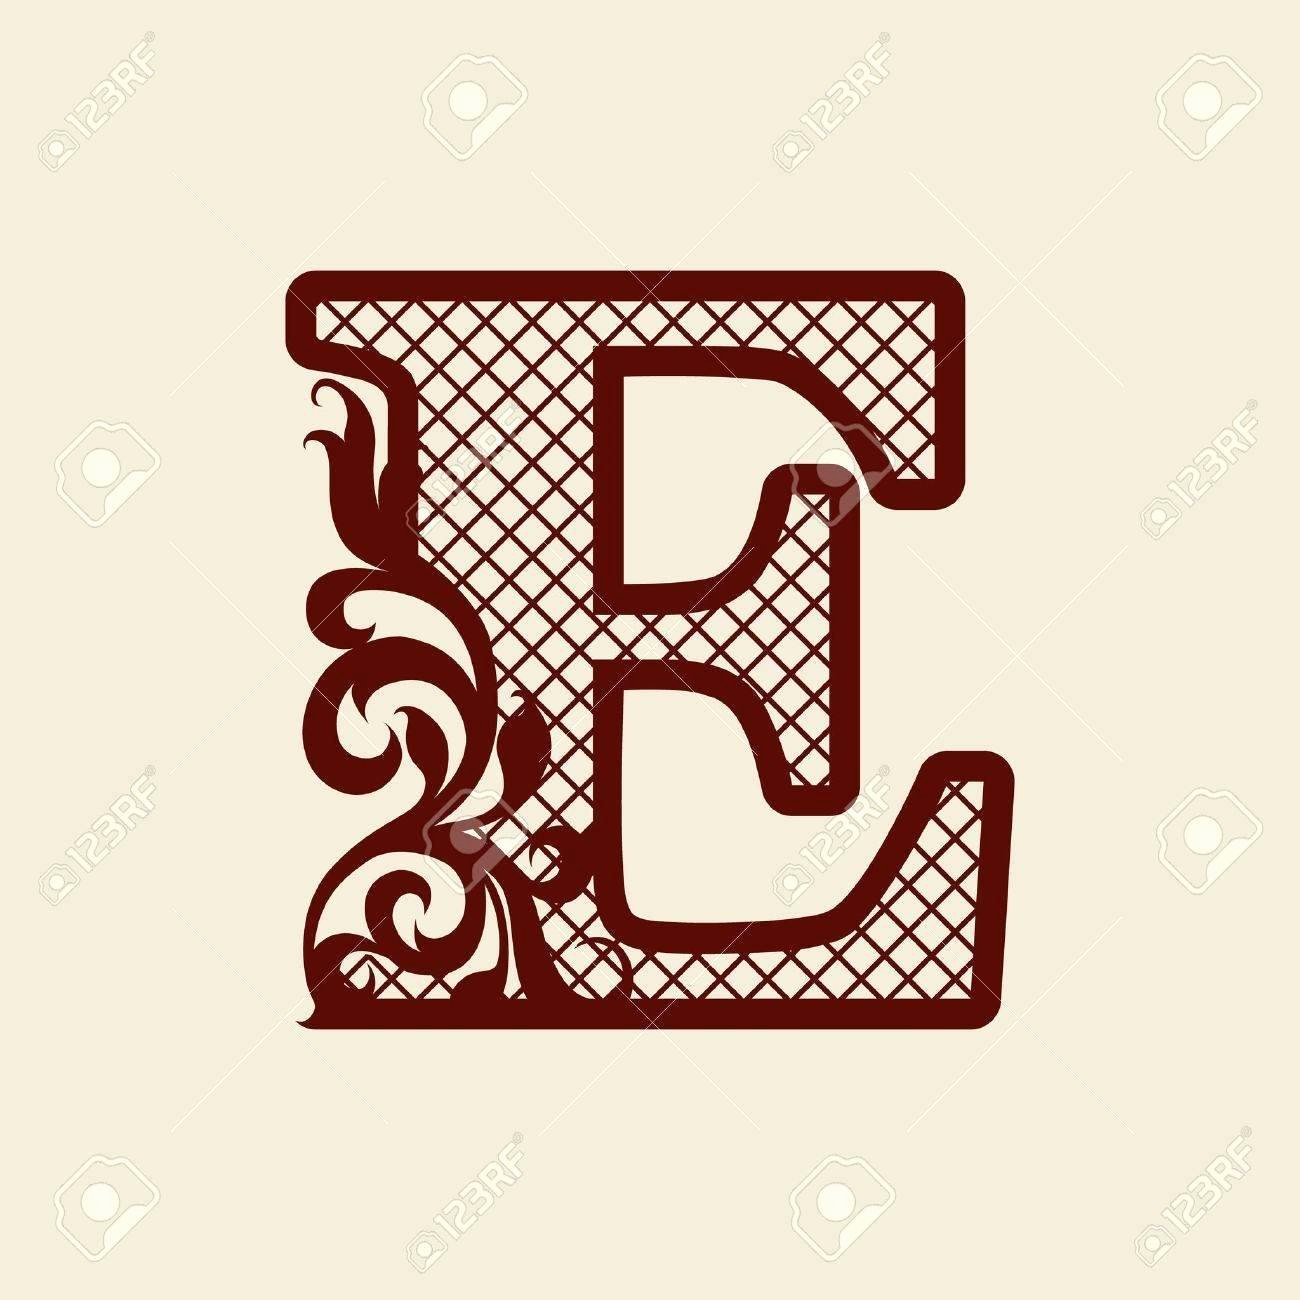 Engraving Templates Letters Inspirational Wood Carving Letter Template